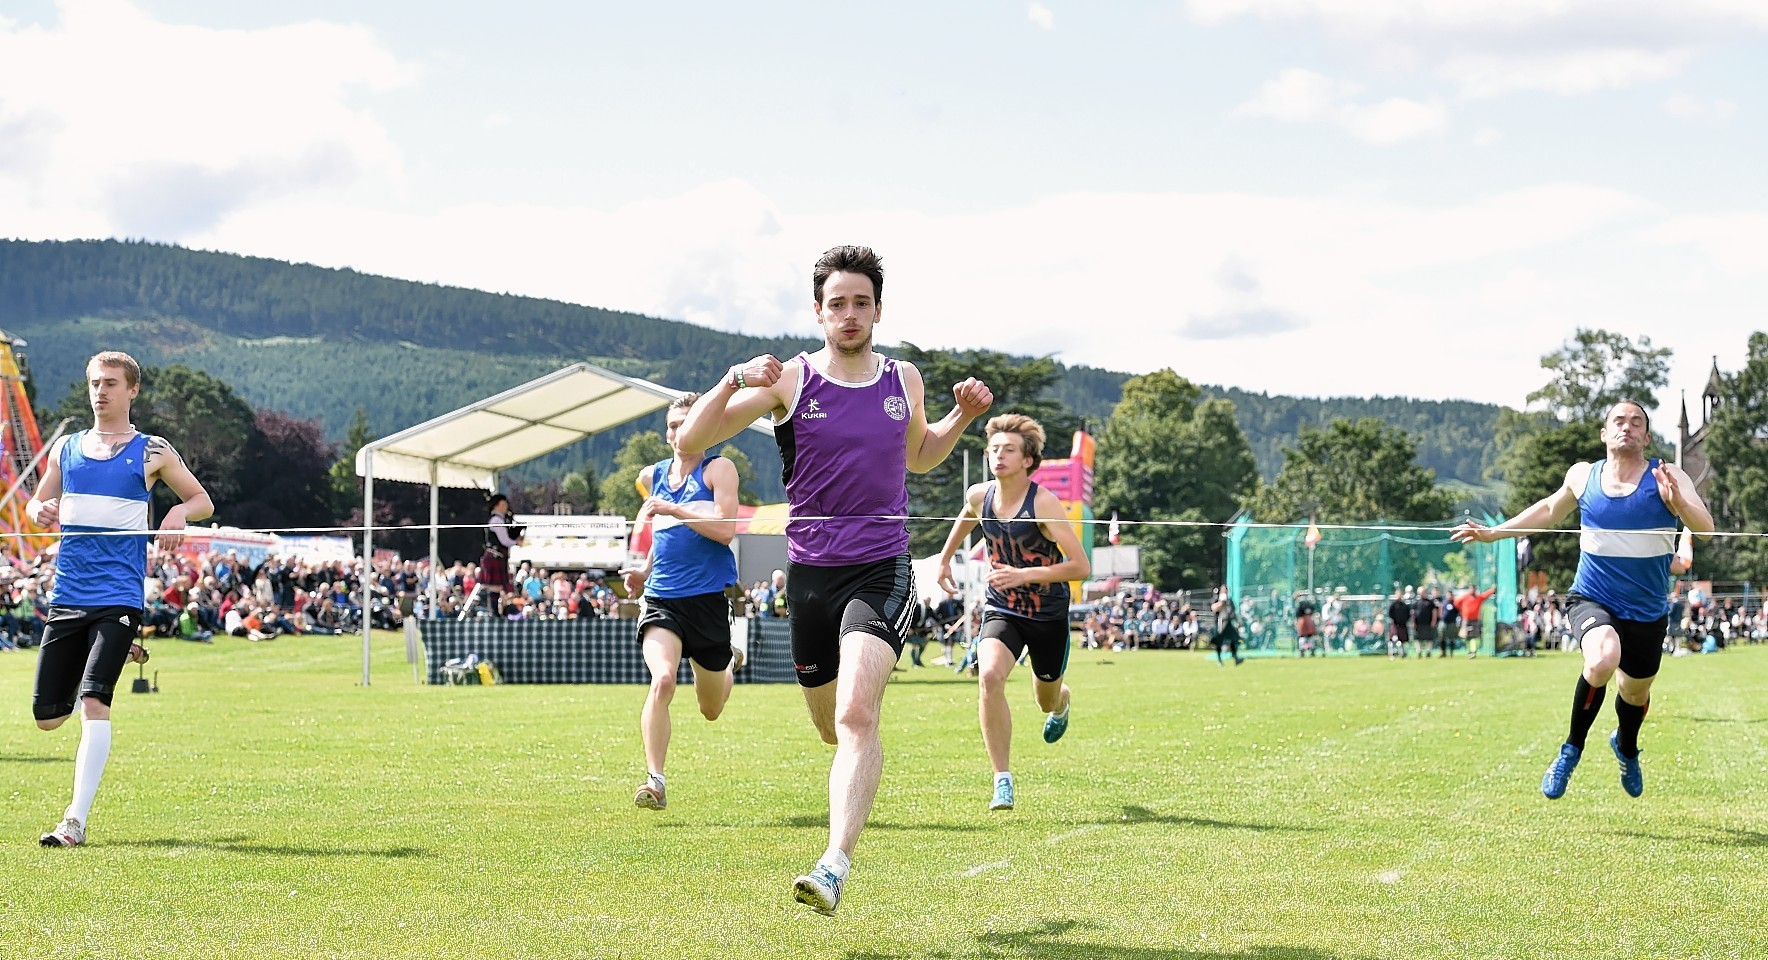 Aboyne Highland Games - winner of the 100 yard race - Sam Lyon from Aberdeen. Picture by COLIN RENNIE